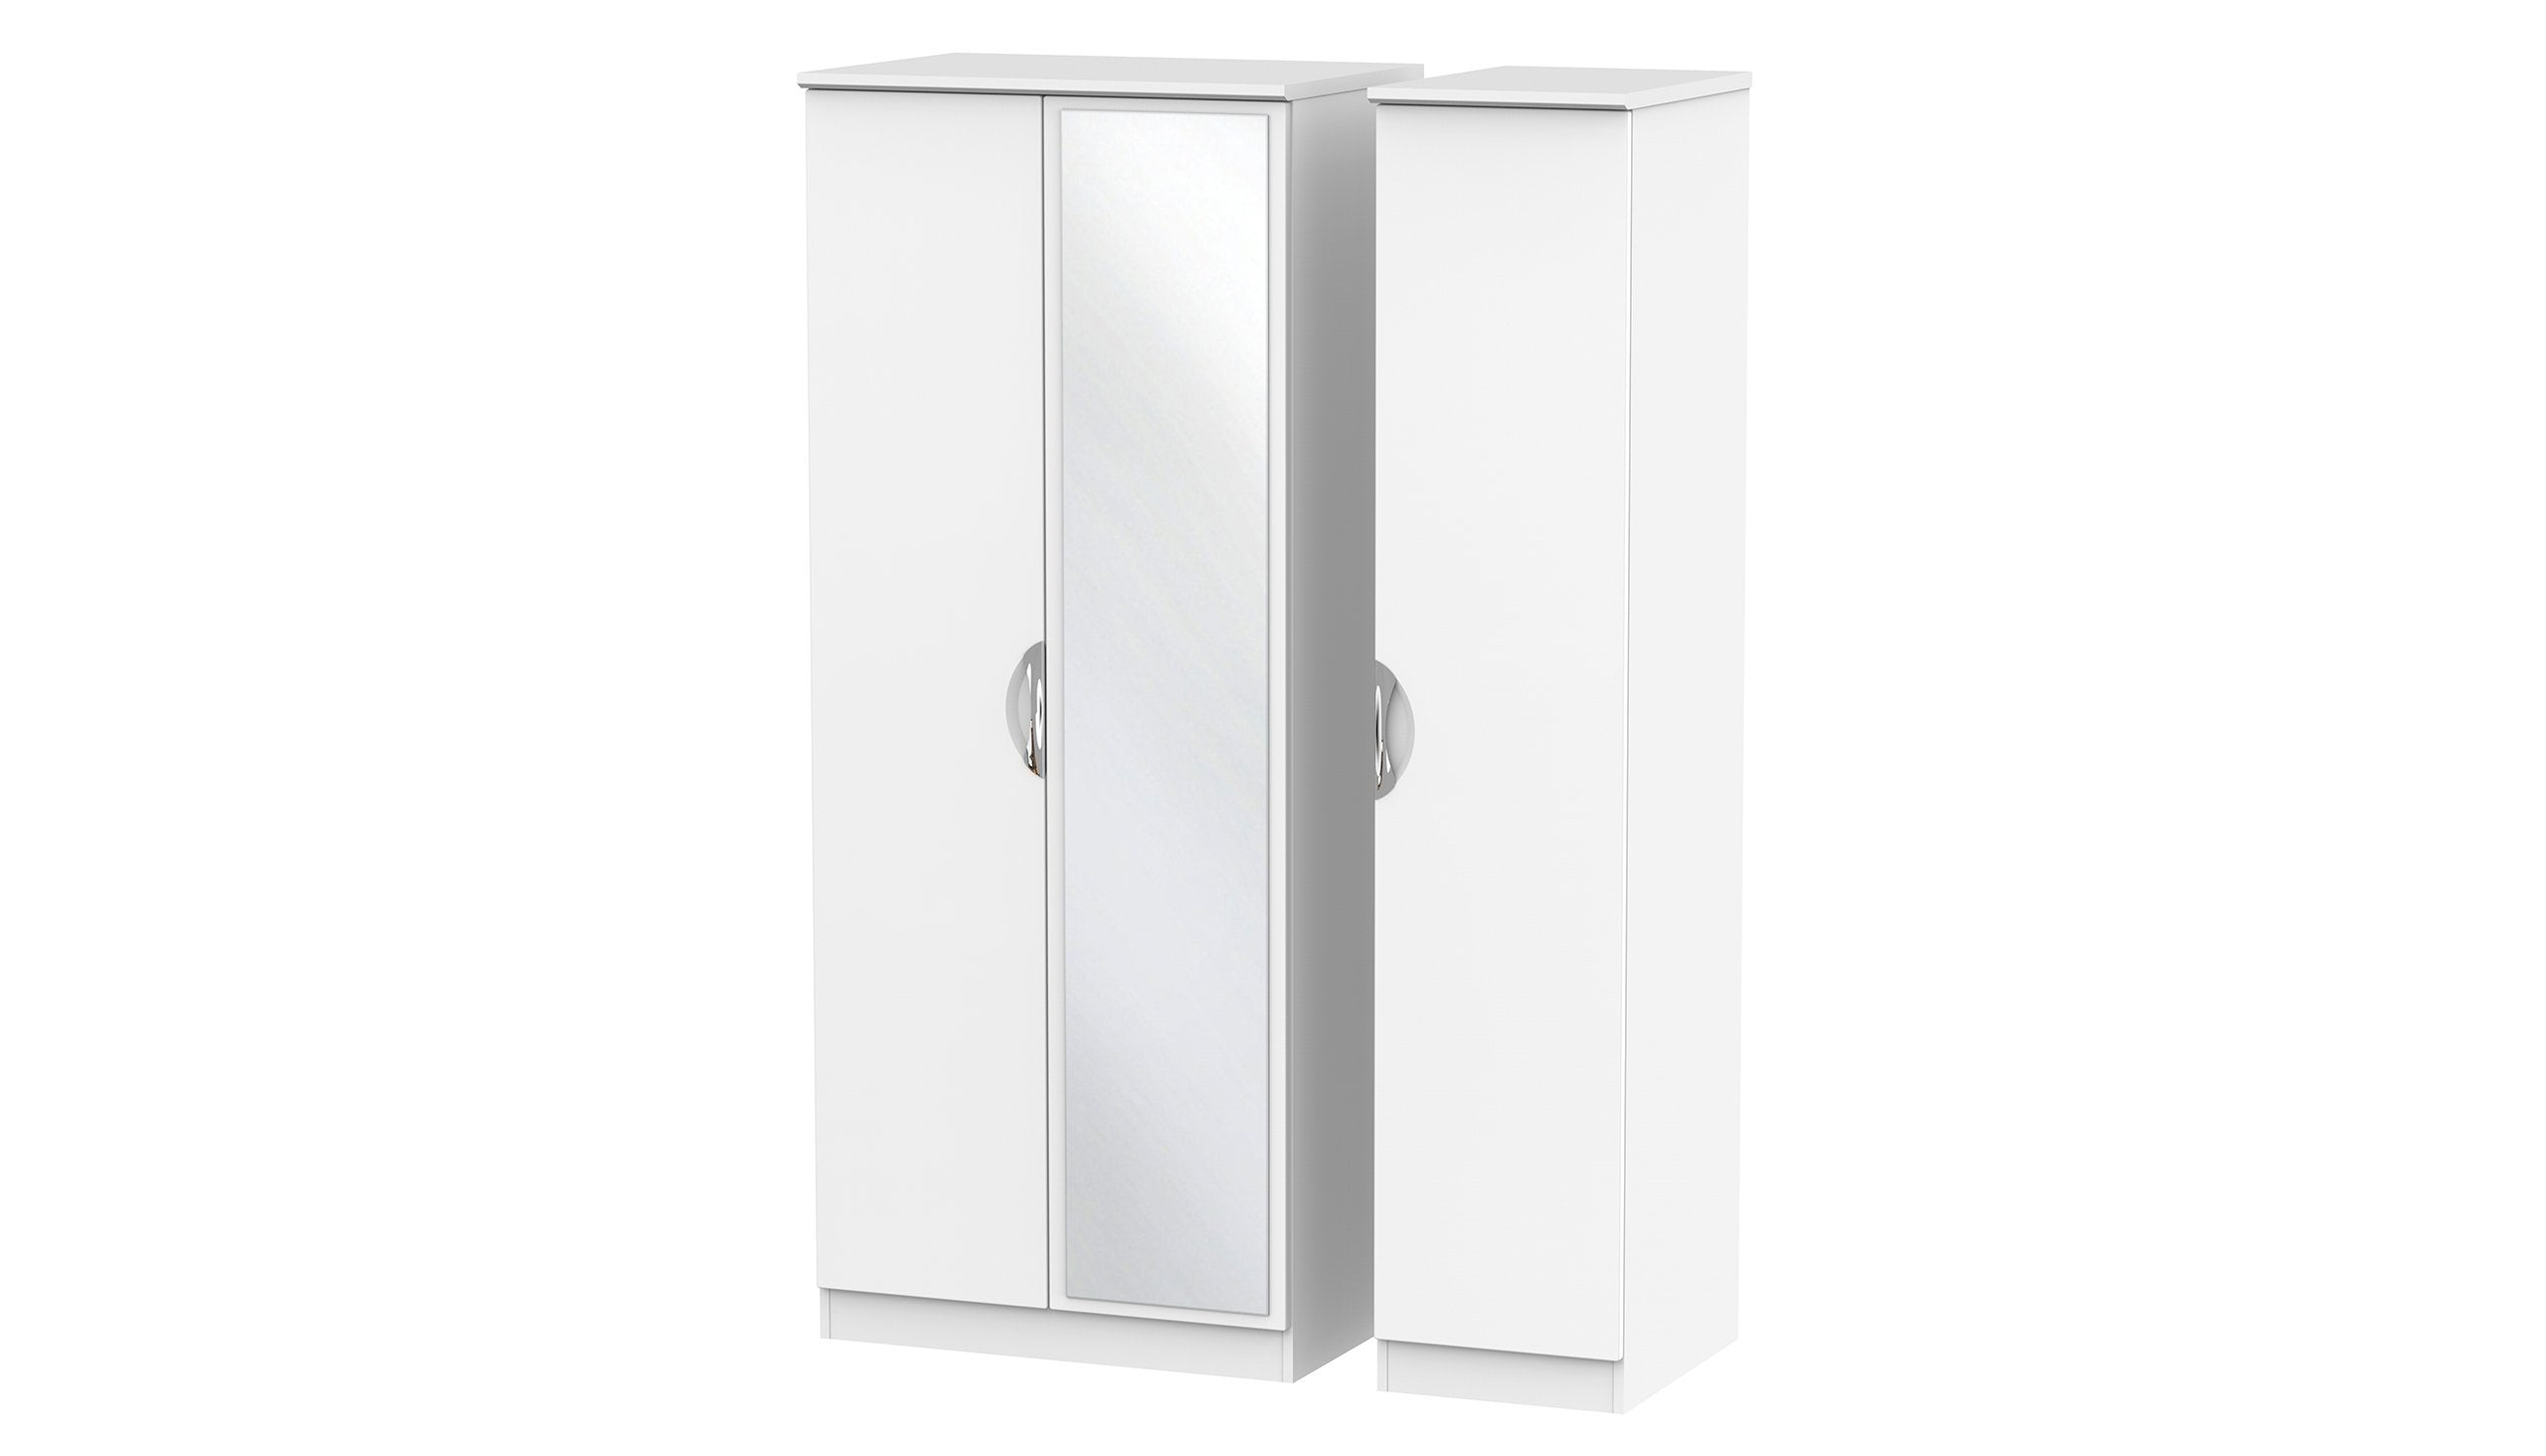 Moda 3 Door 1 Mirror Wardrobe - AHF Furniture & Carpets